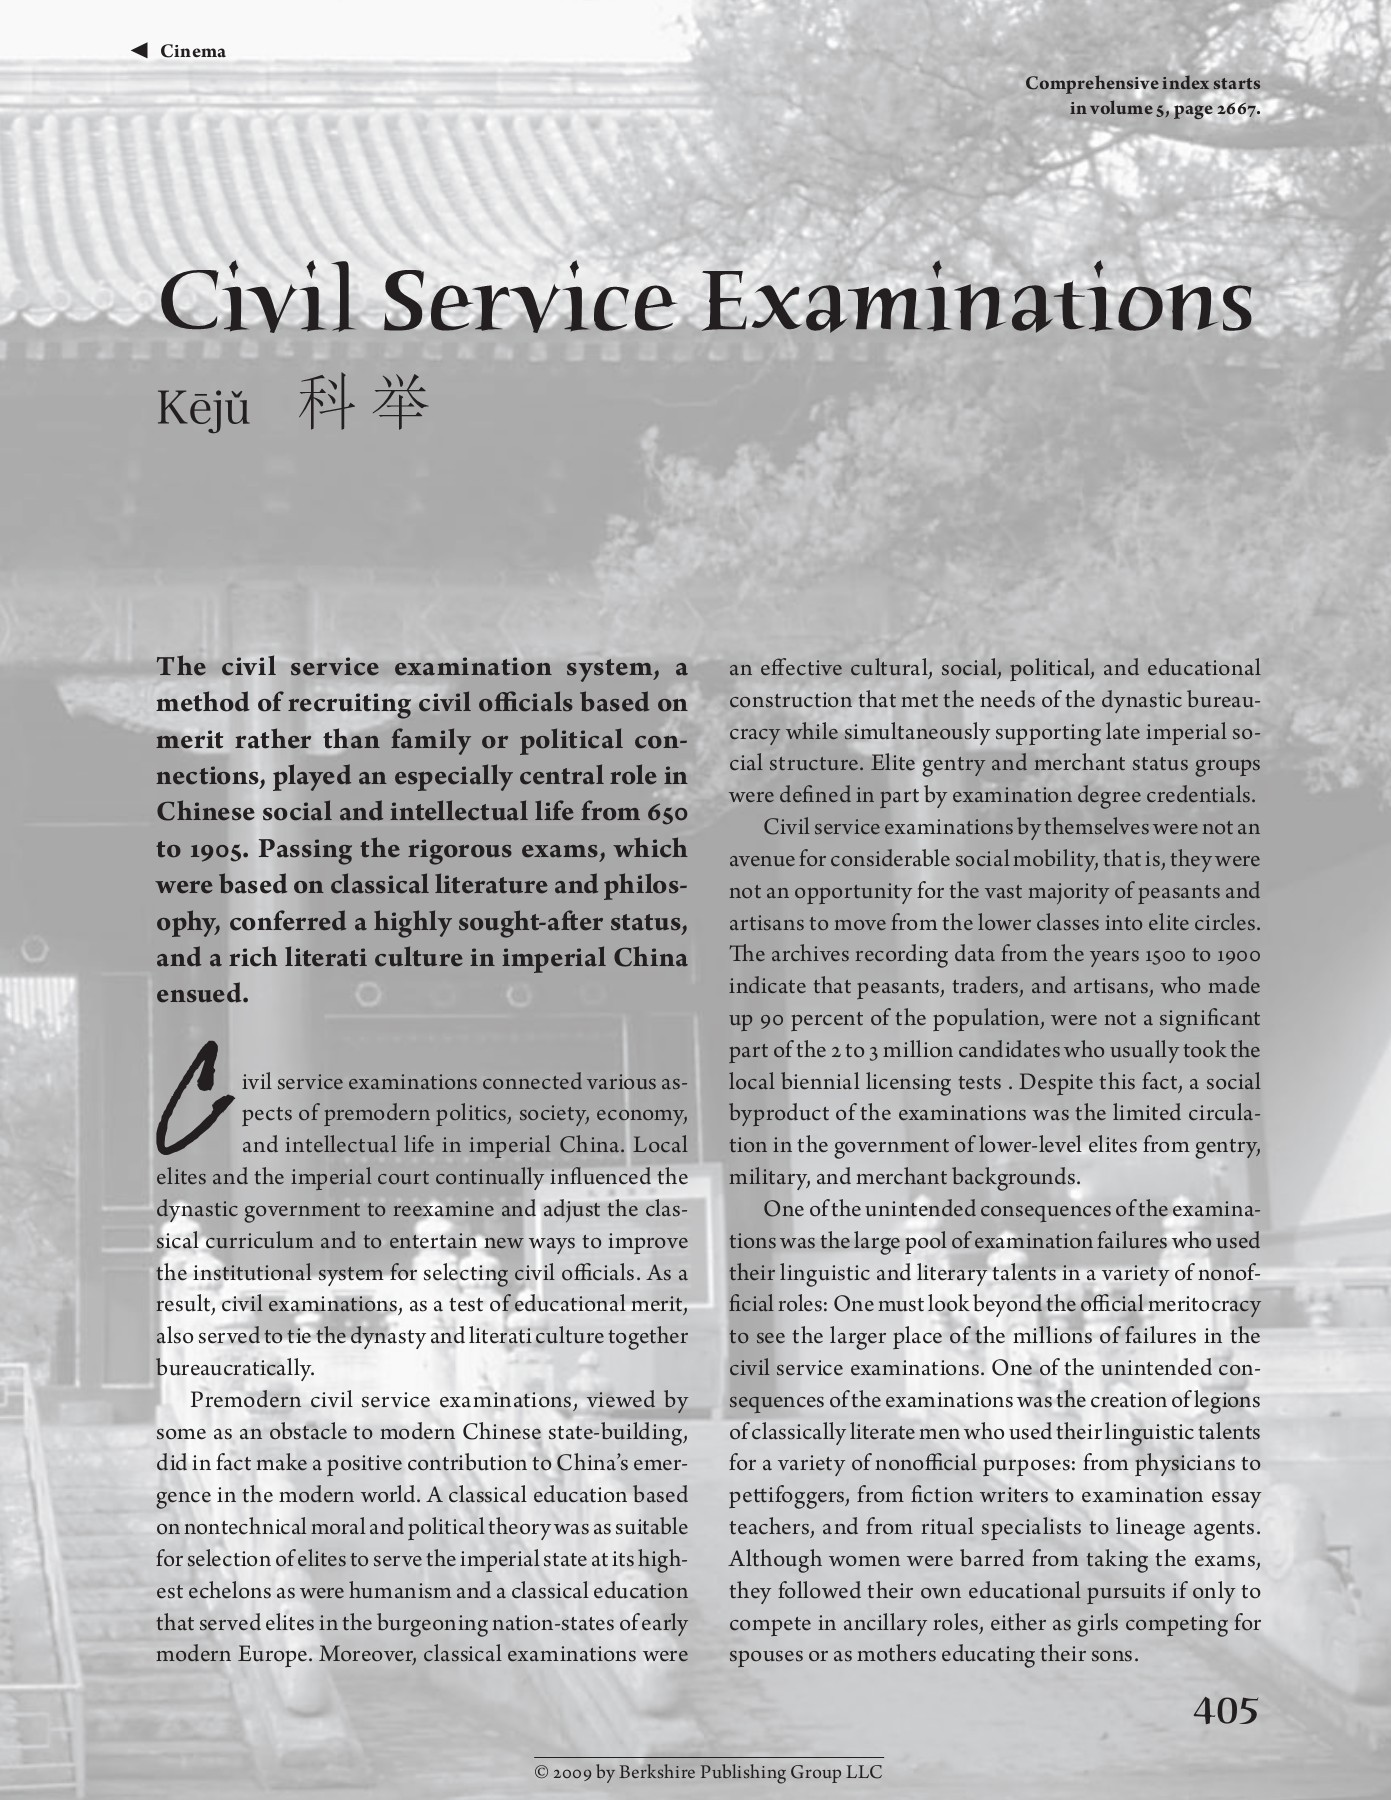 Civil Service Examinations Princeton University Home Pages 1 6 Text Version Anyflip